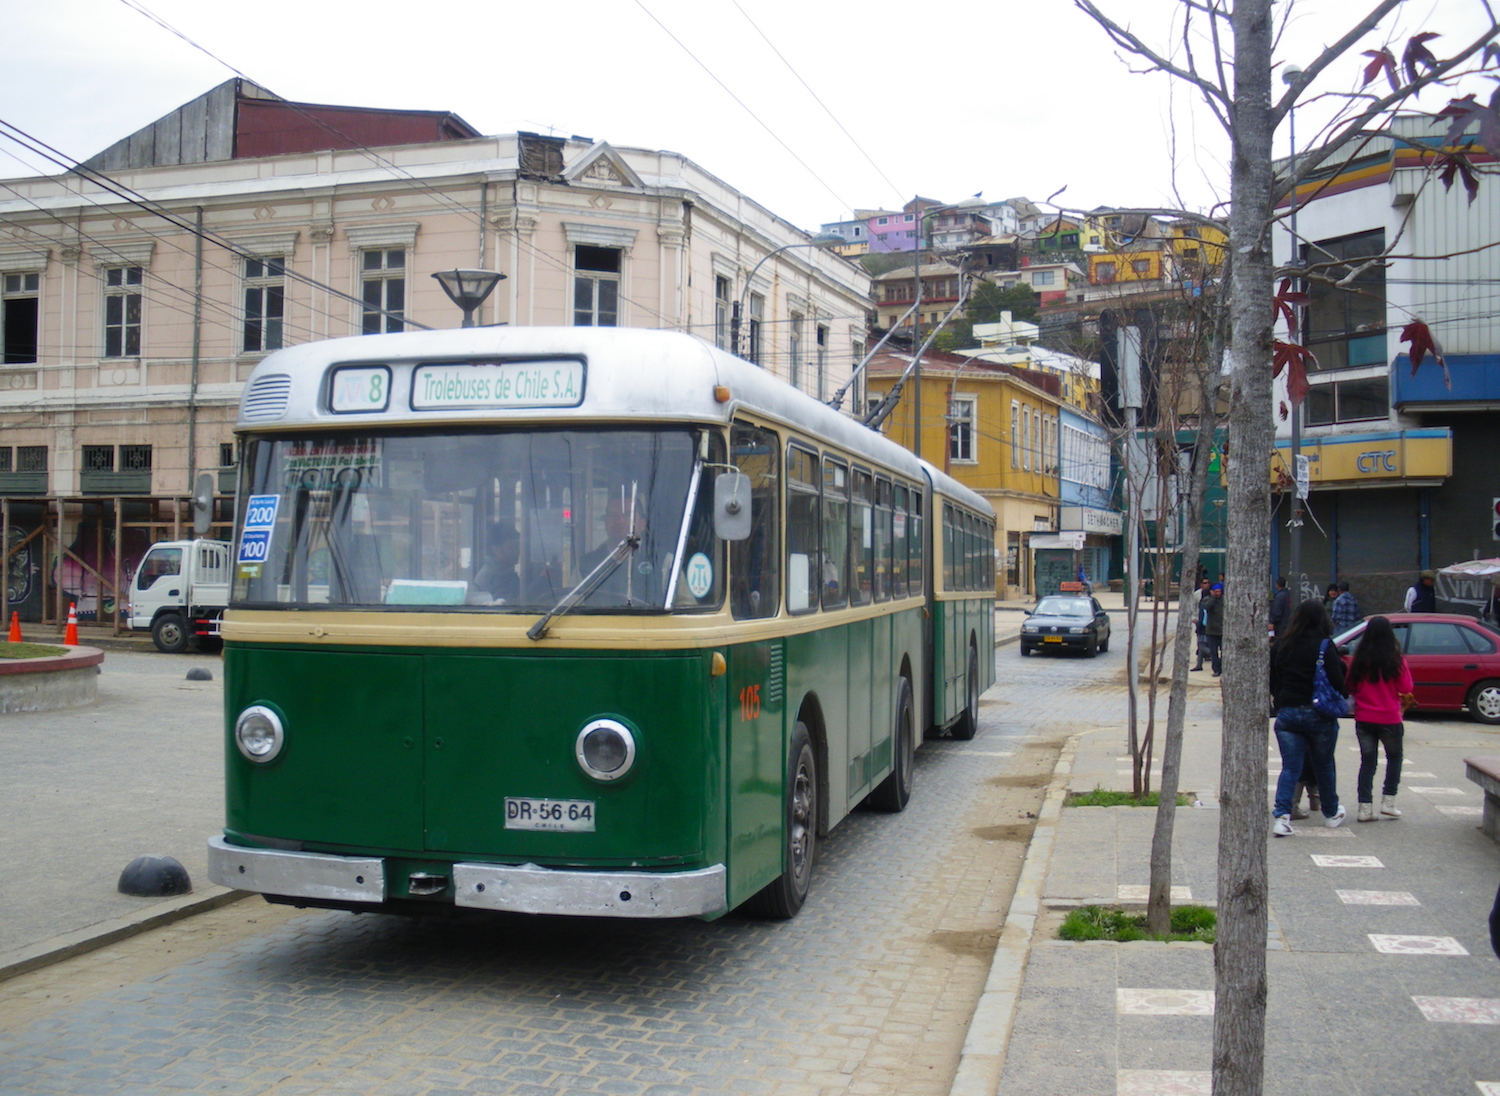 Trolleybus in Valparaiso